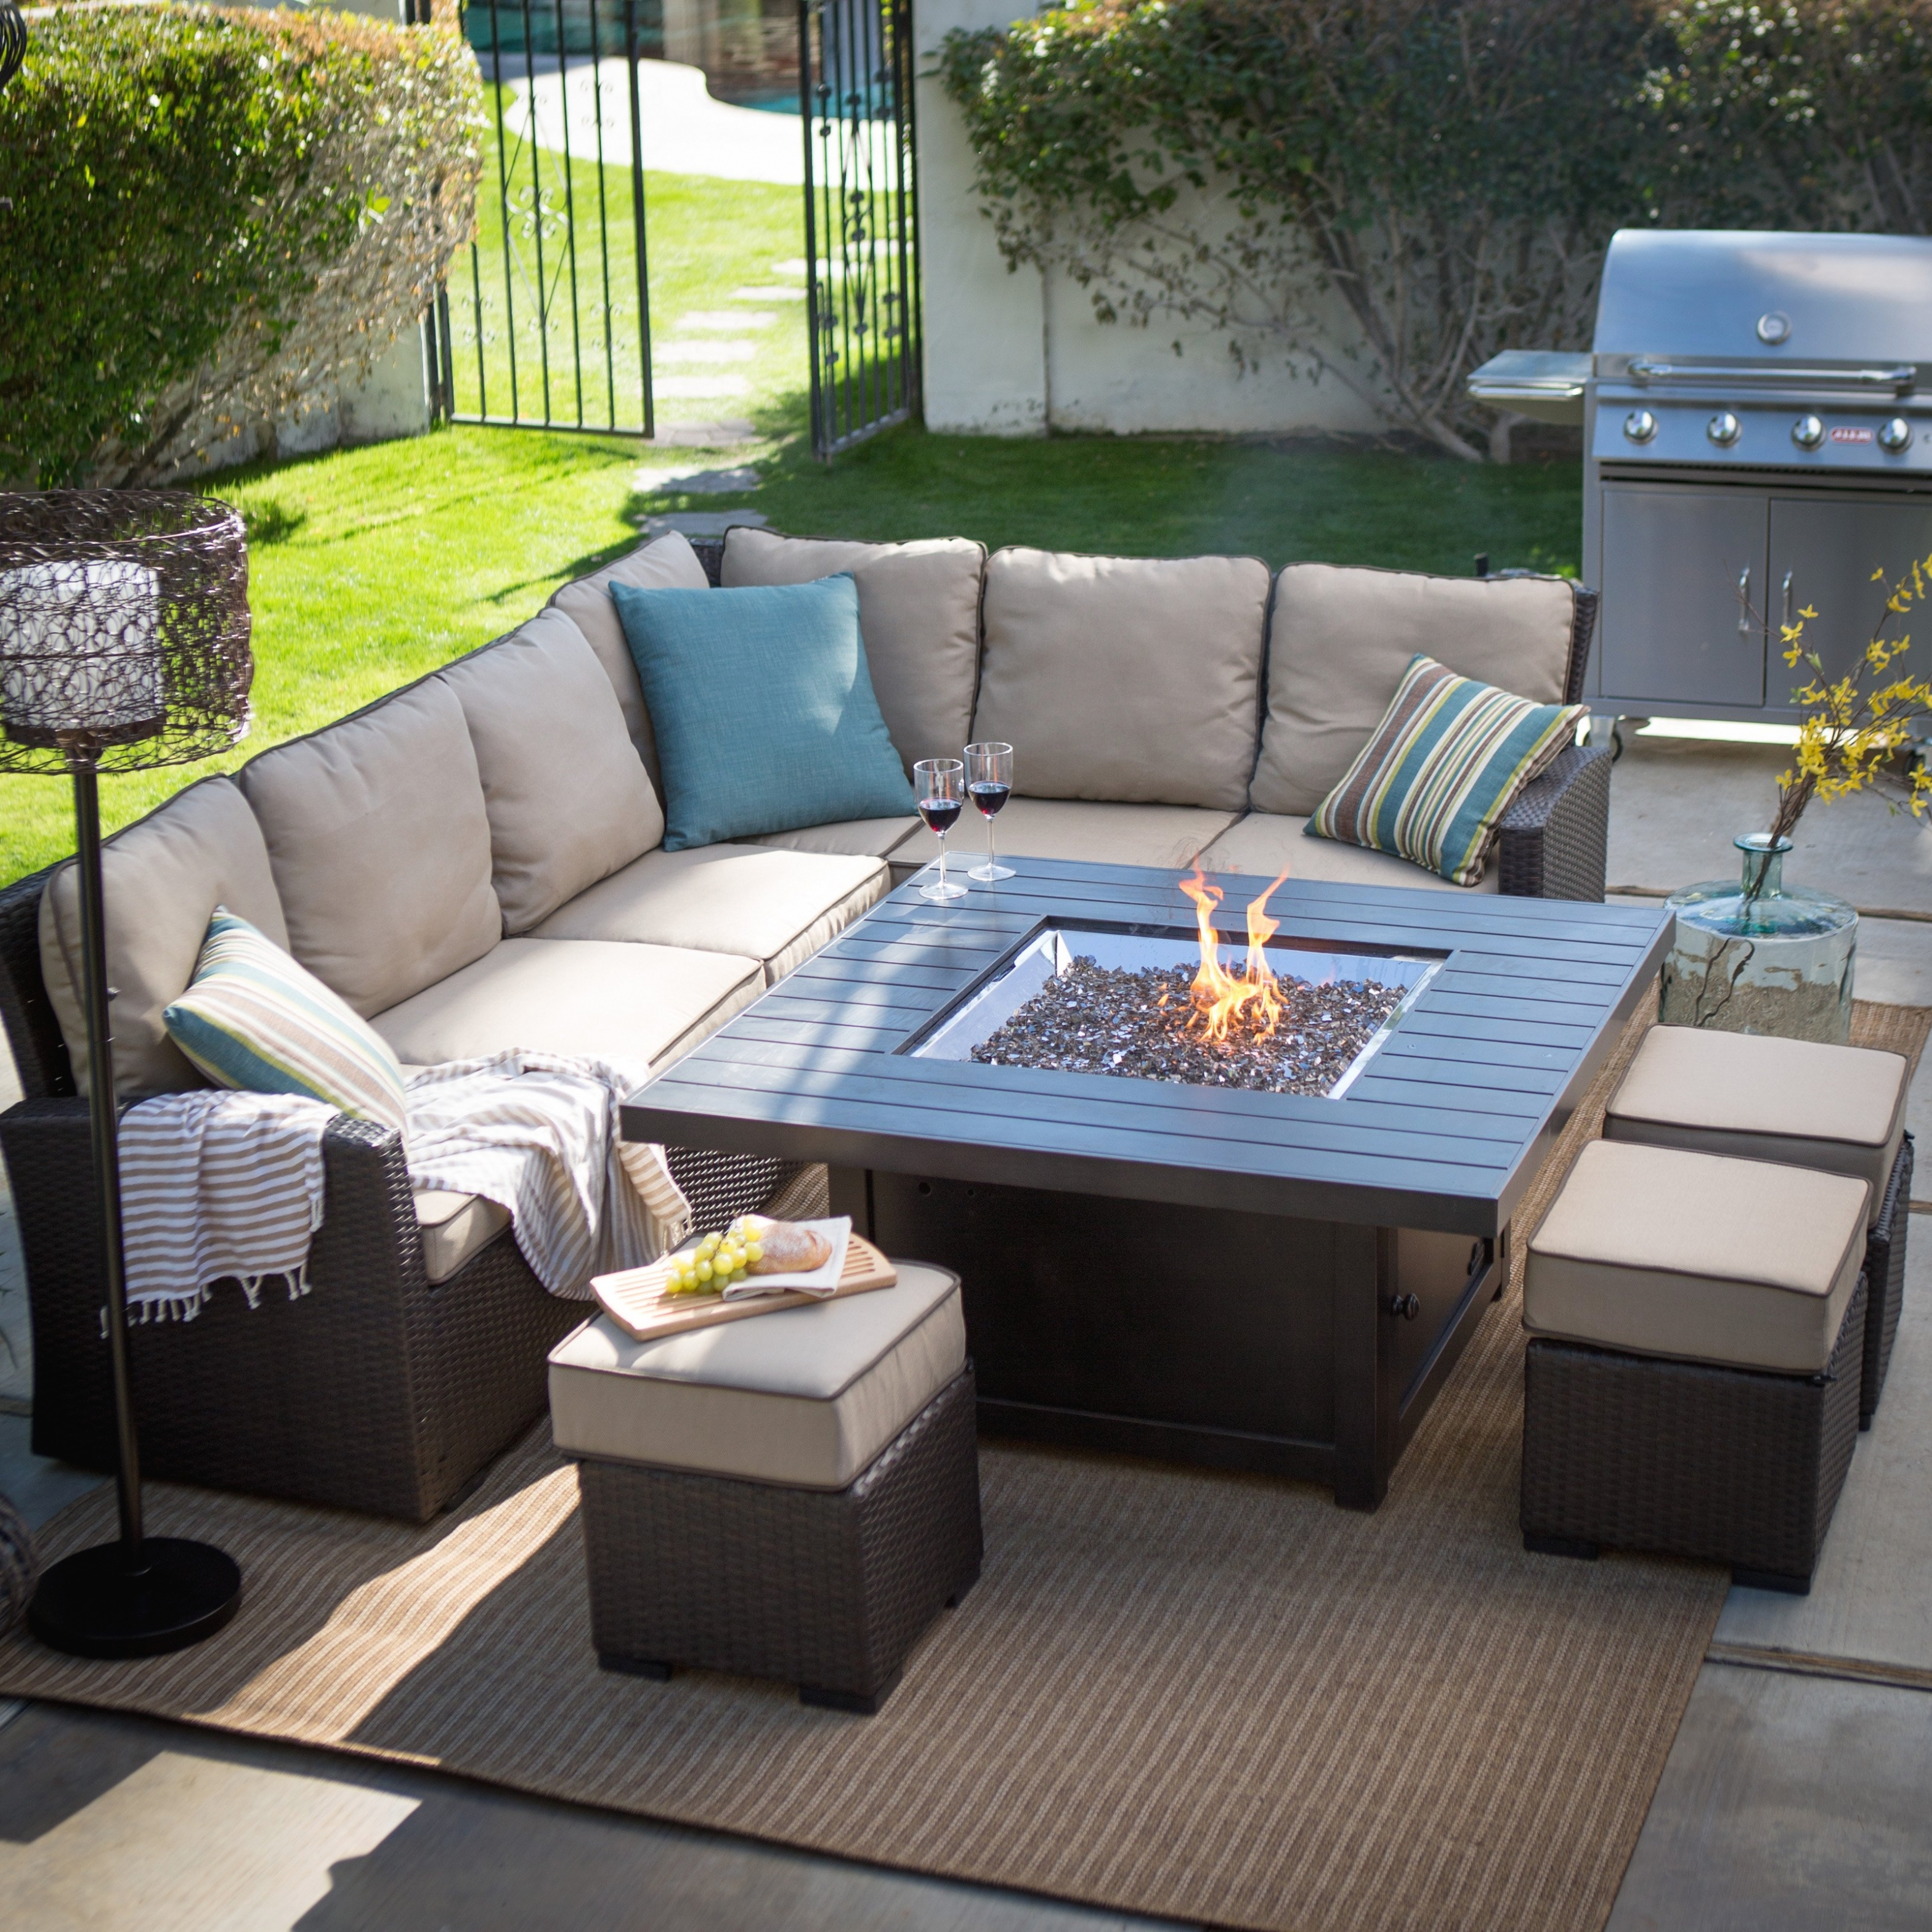 Revisited Fire Pit Conversation Sets Shrewd Patio Furniture Decor Within 2018 Patio Conversation Sets With Fire Table (View 4 of 15)